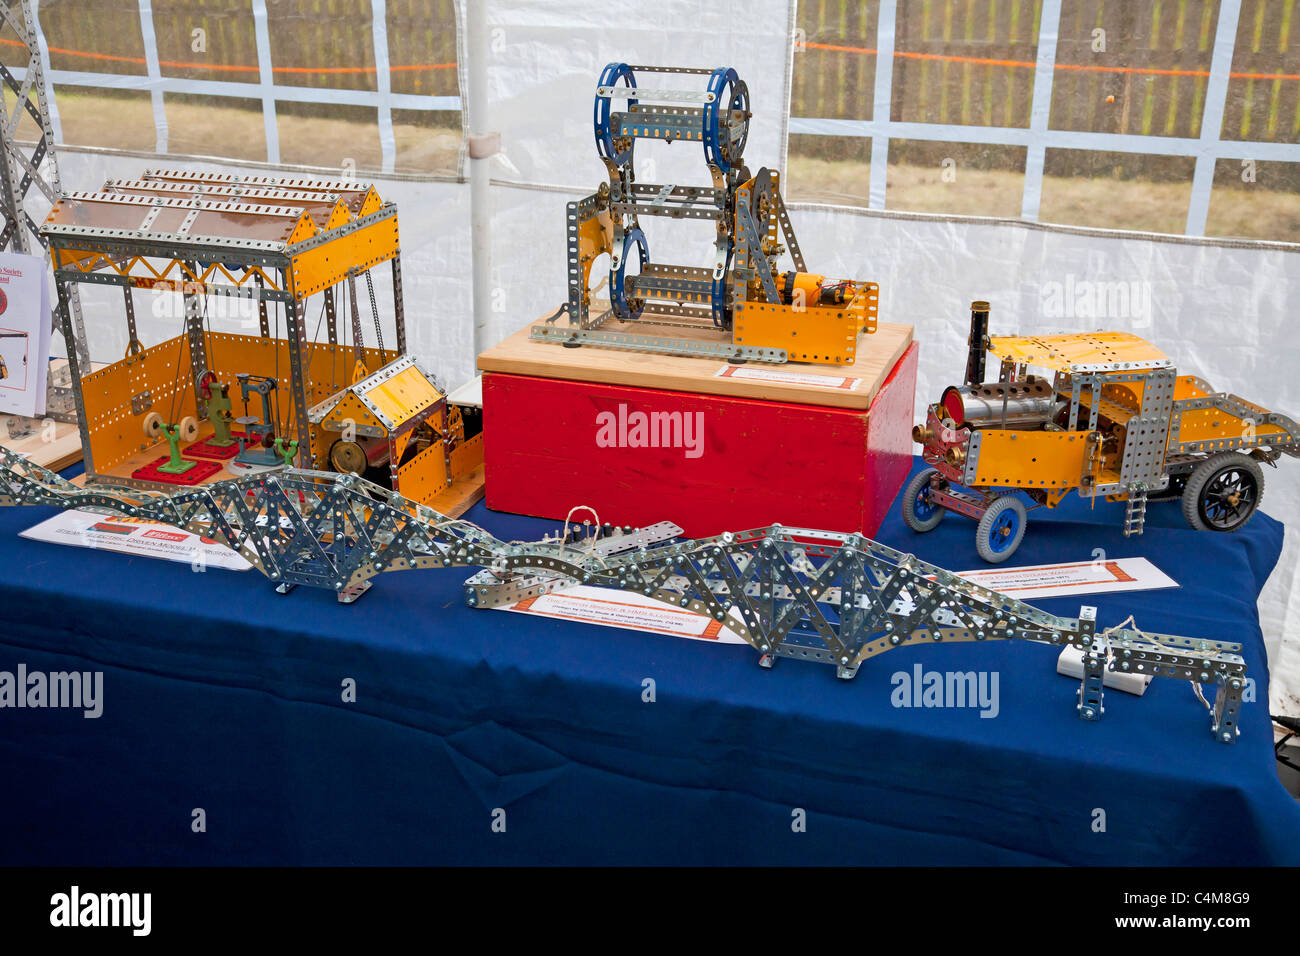 Traditional Meccano models including the Forth Rail Bridge and the Falkirk Wheel on show at Mauchline Holy Fair - Stock Image